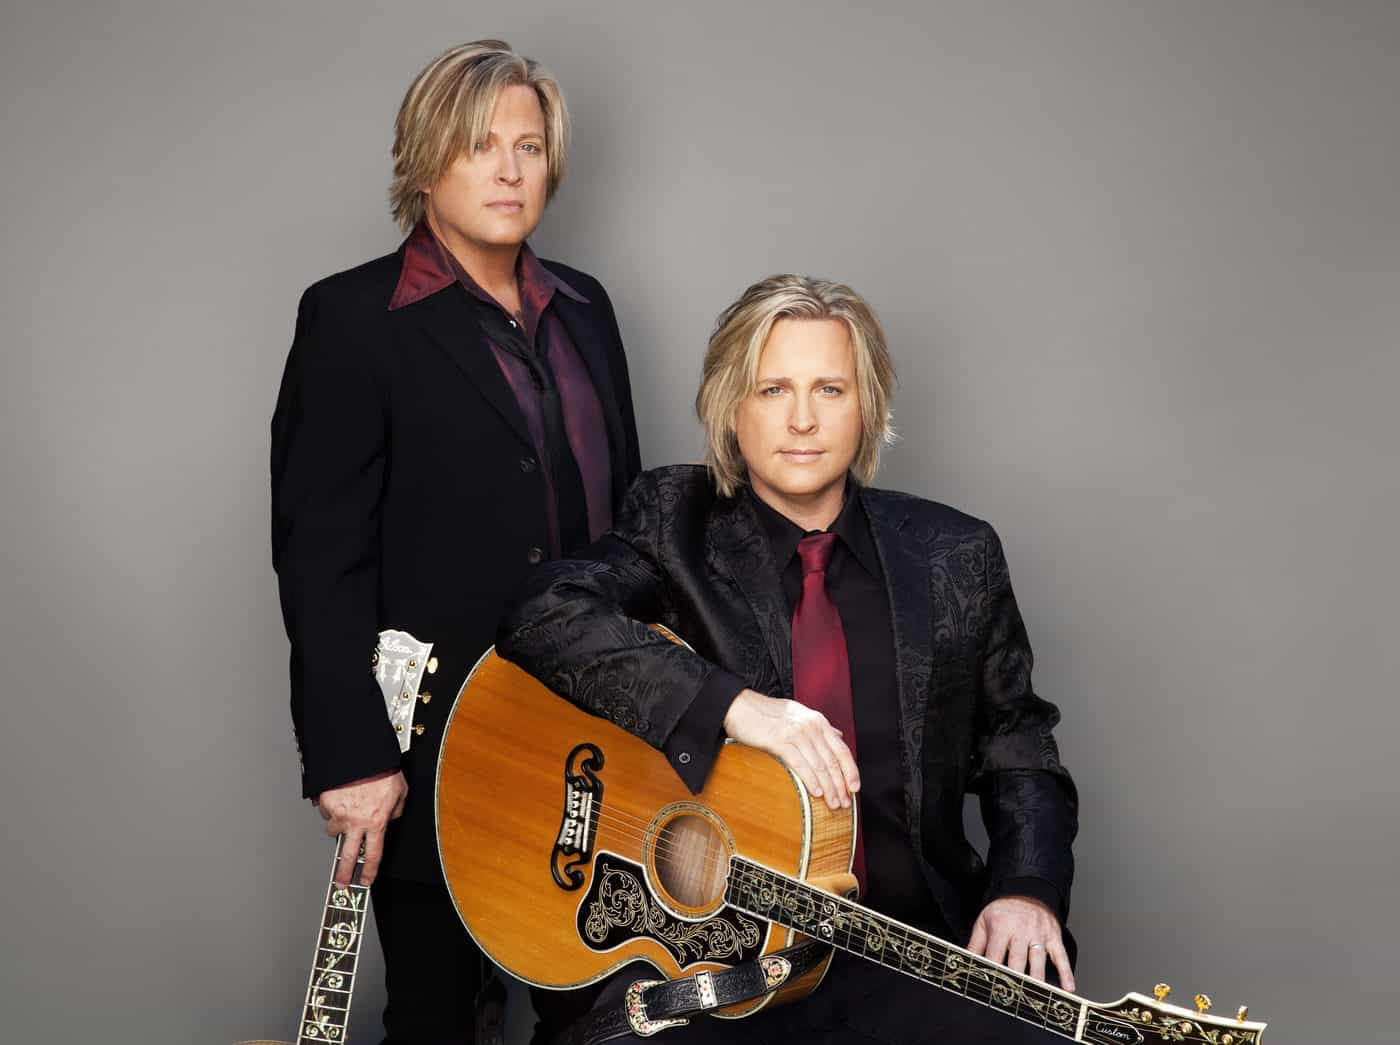 Matthew and Gunnar Nelson